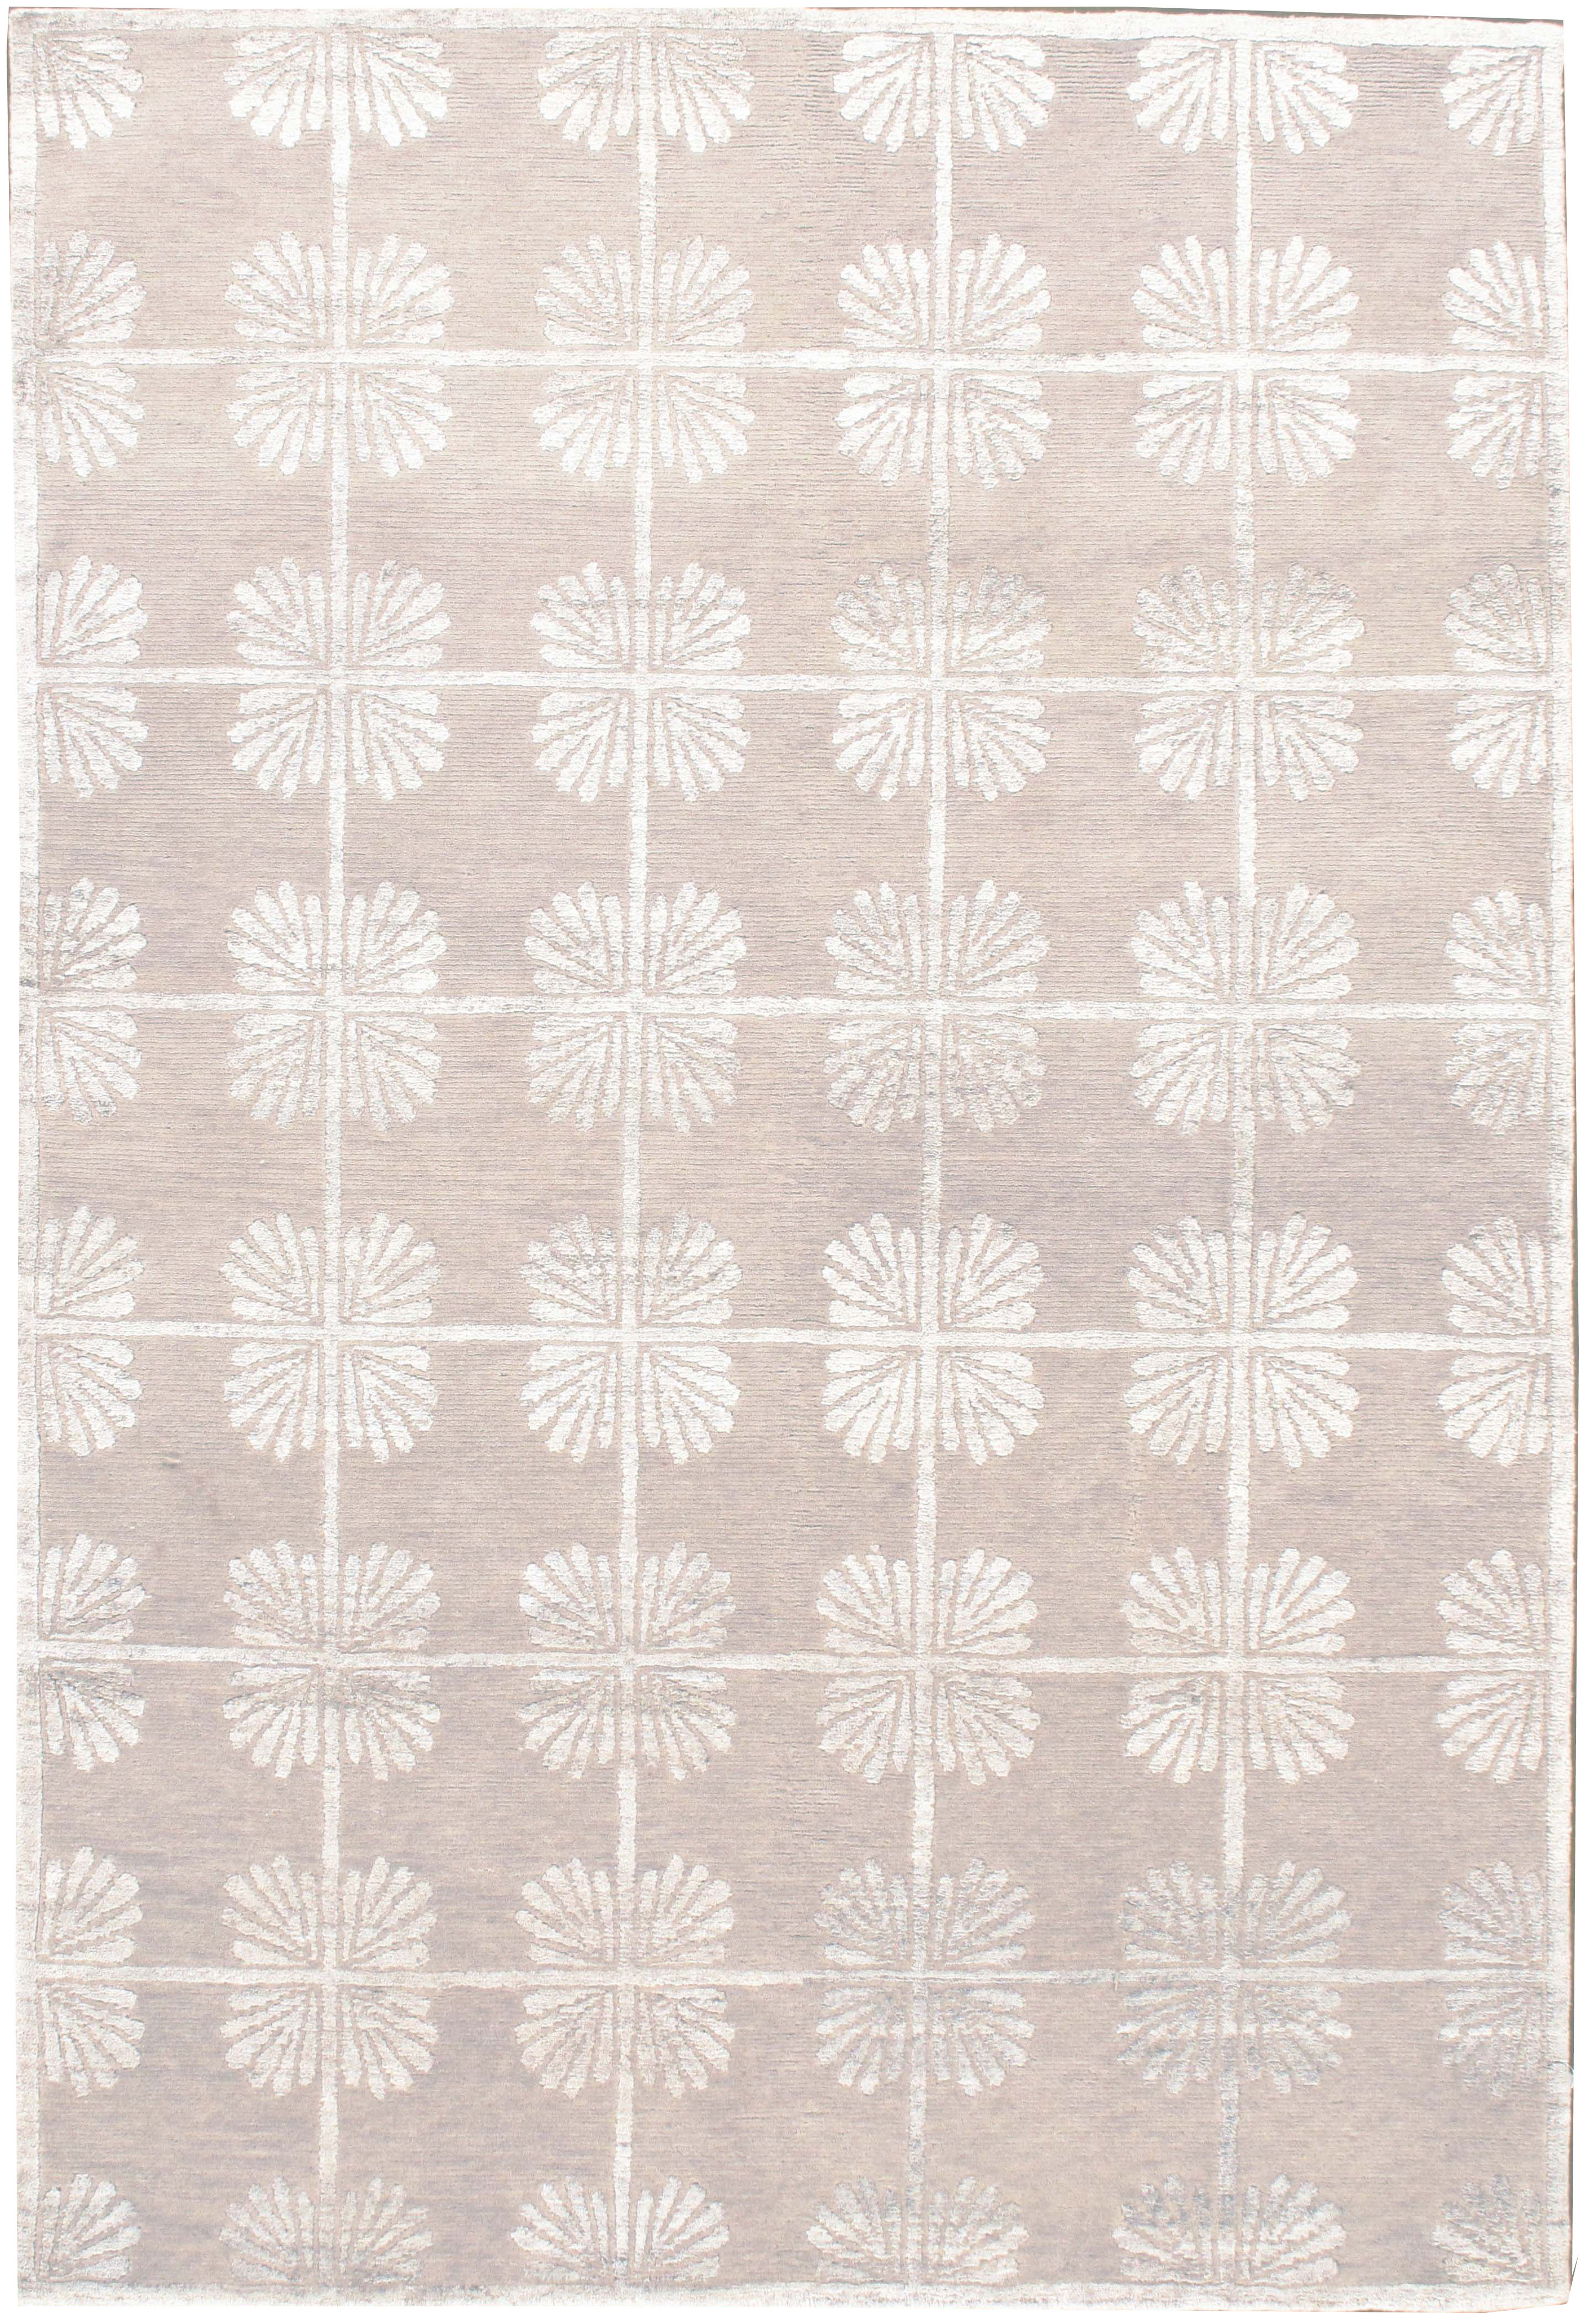 Oyster Lace Contemporary Rug